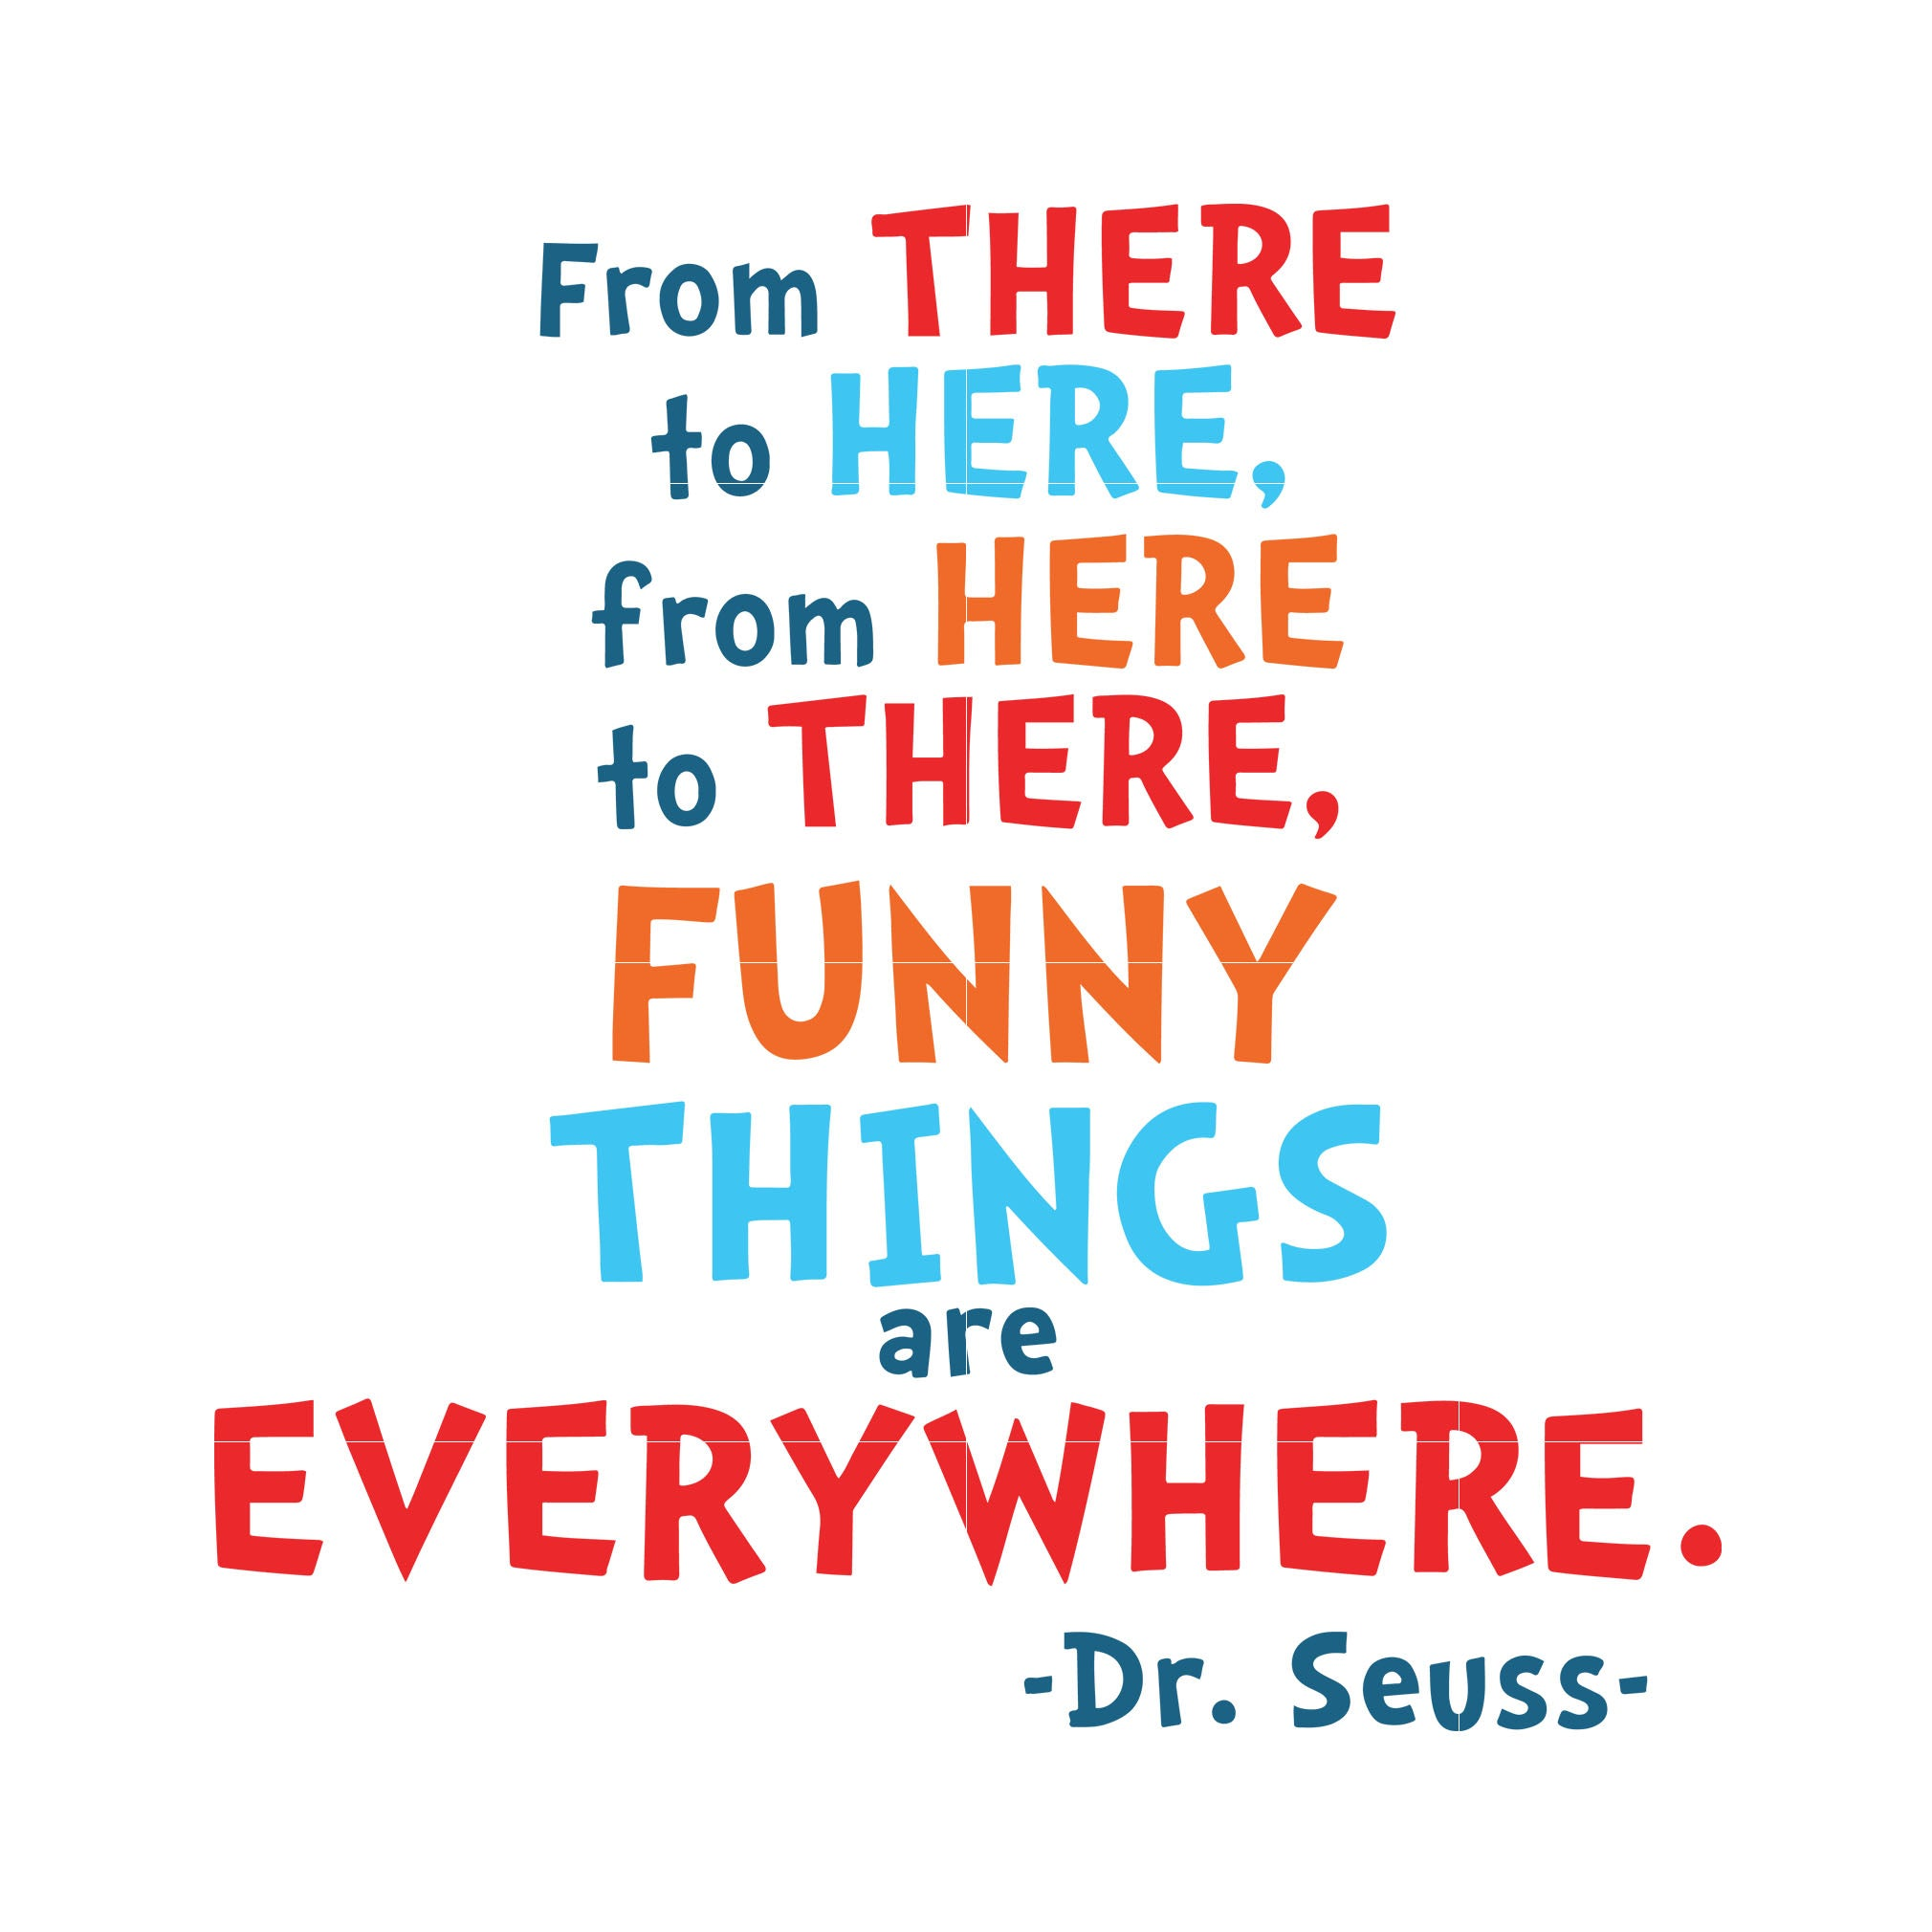 Funny things everywhere, dr seuss svg, dr seuss quotes, digital file